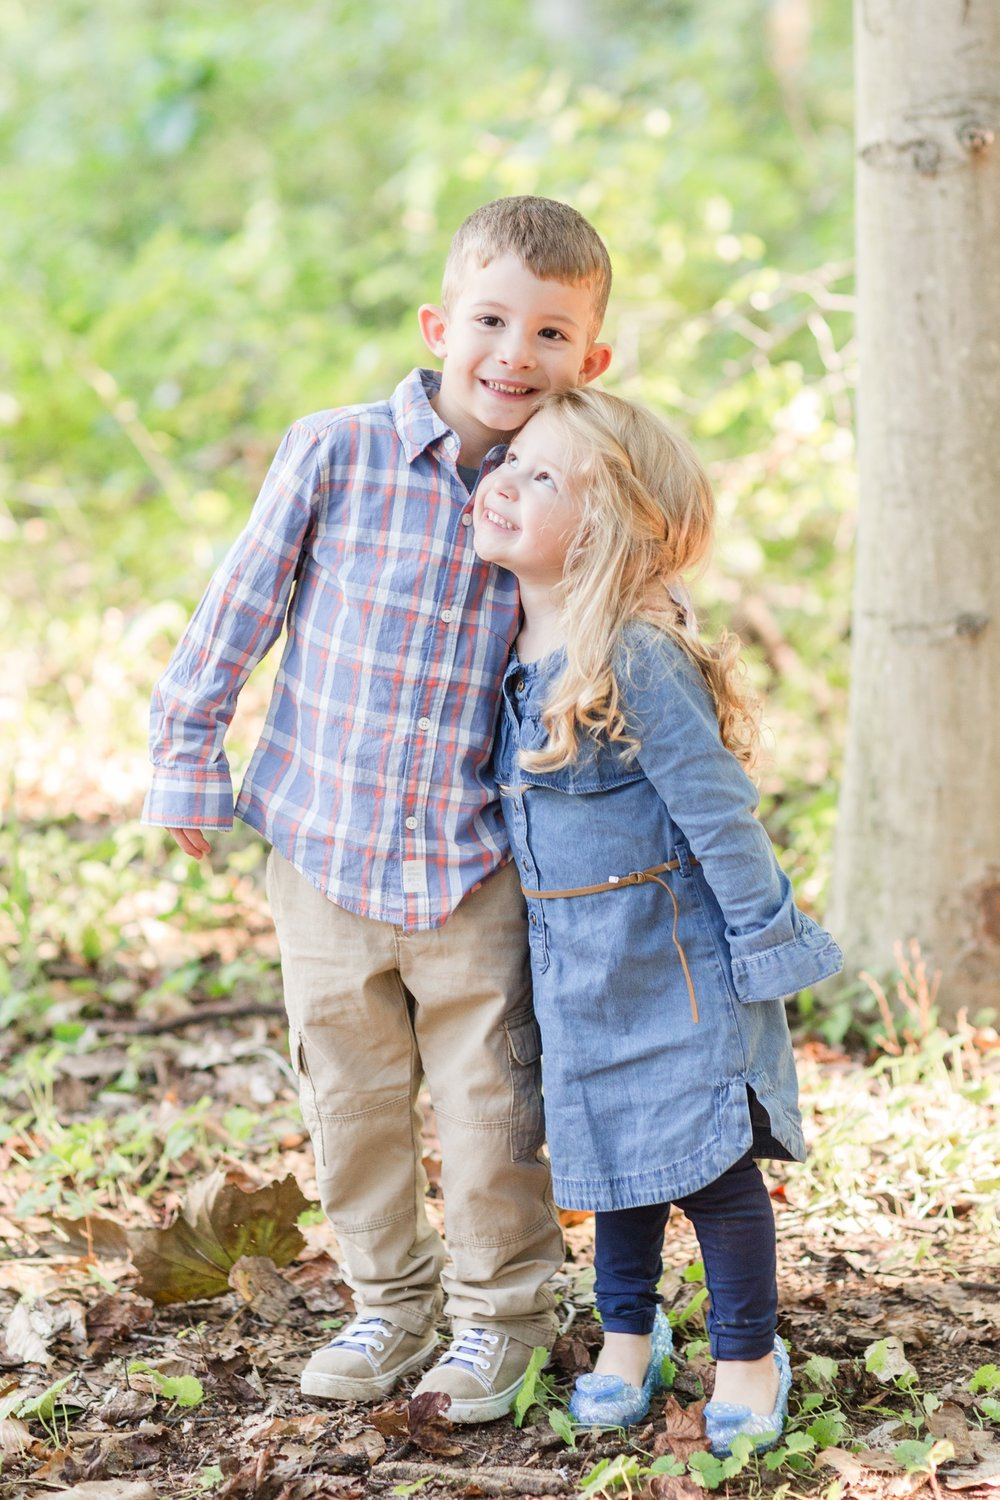 See more from the   Benesch family session at Jerusalem Mill here  !